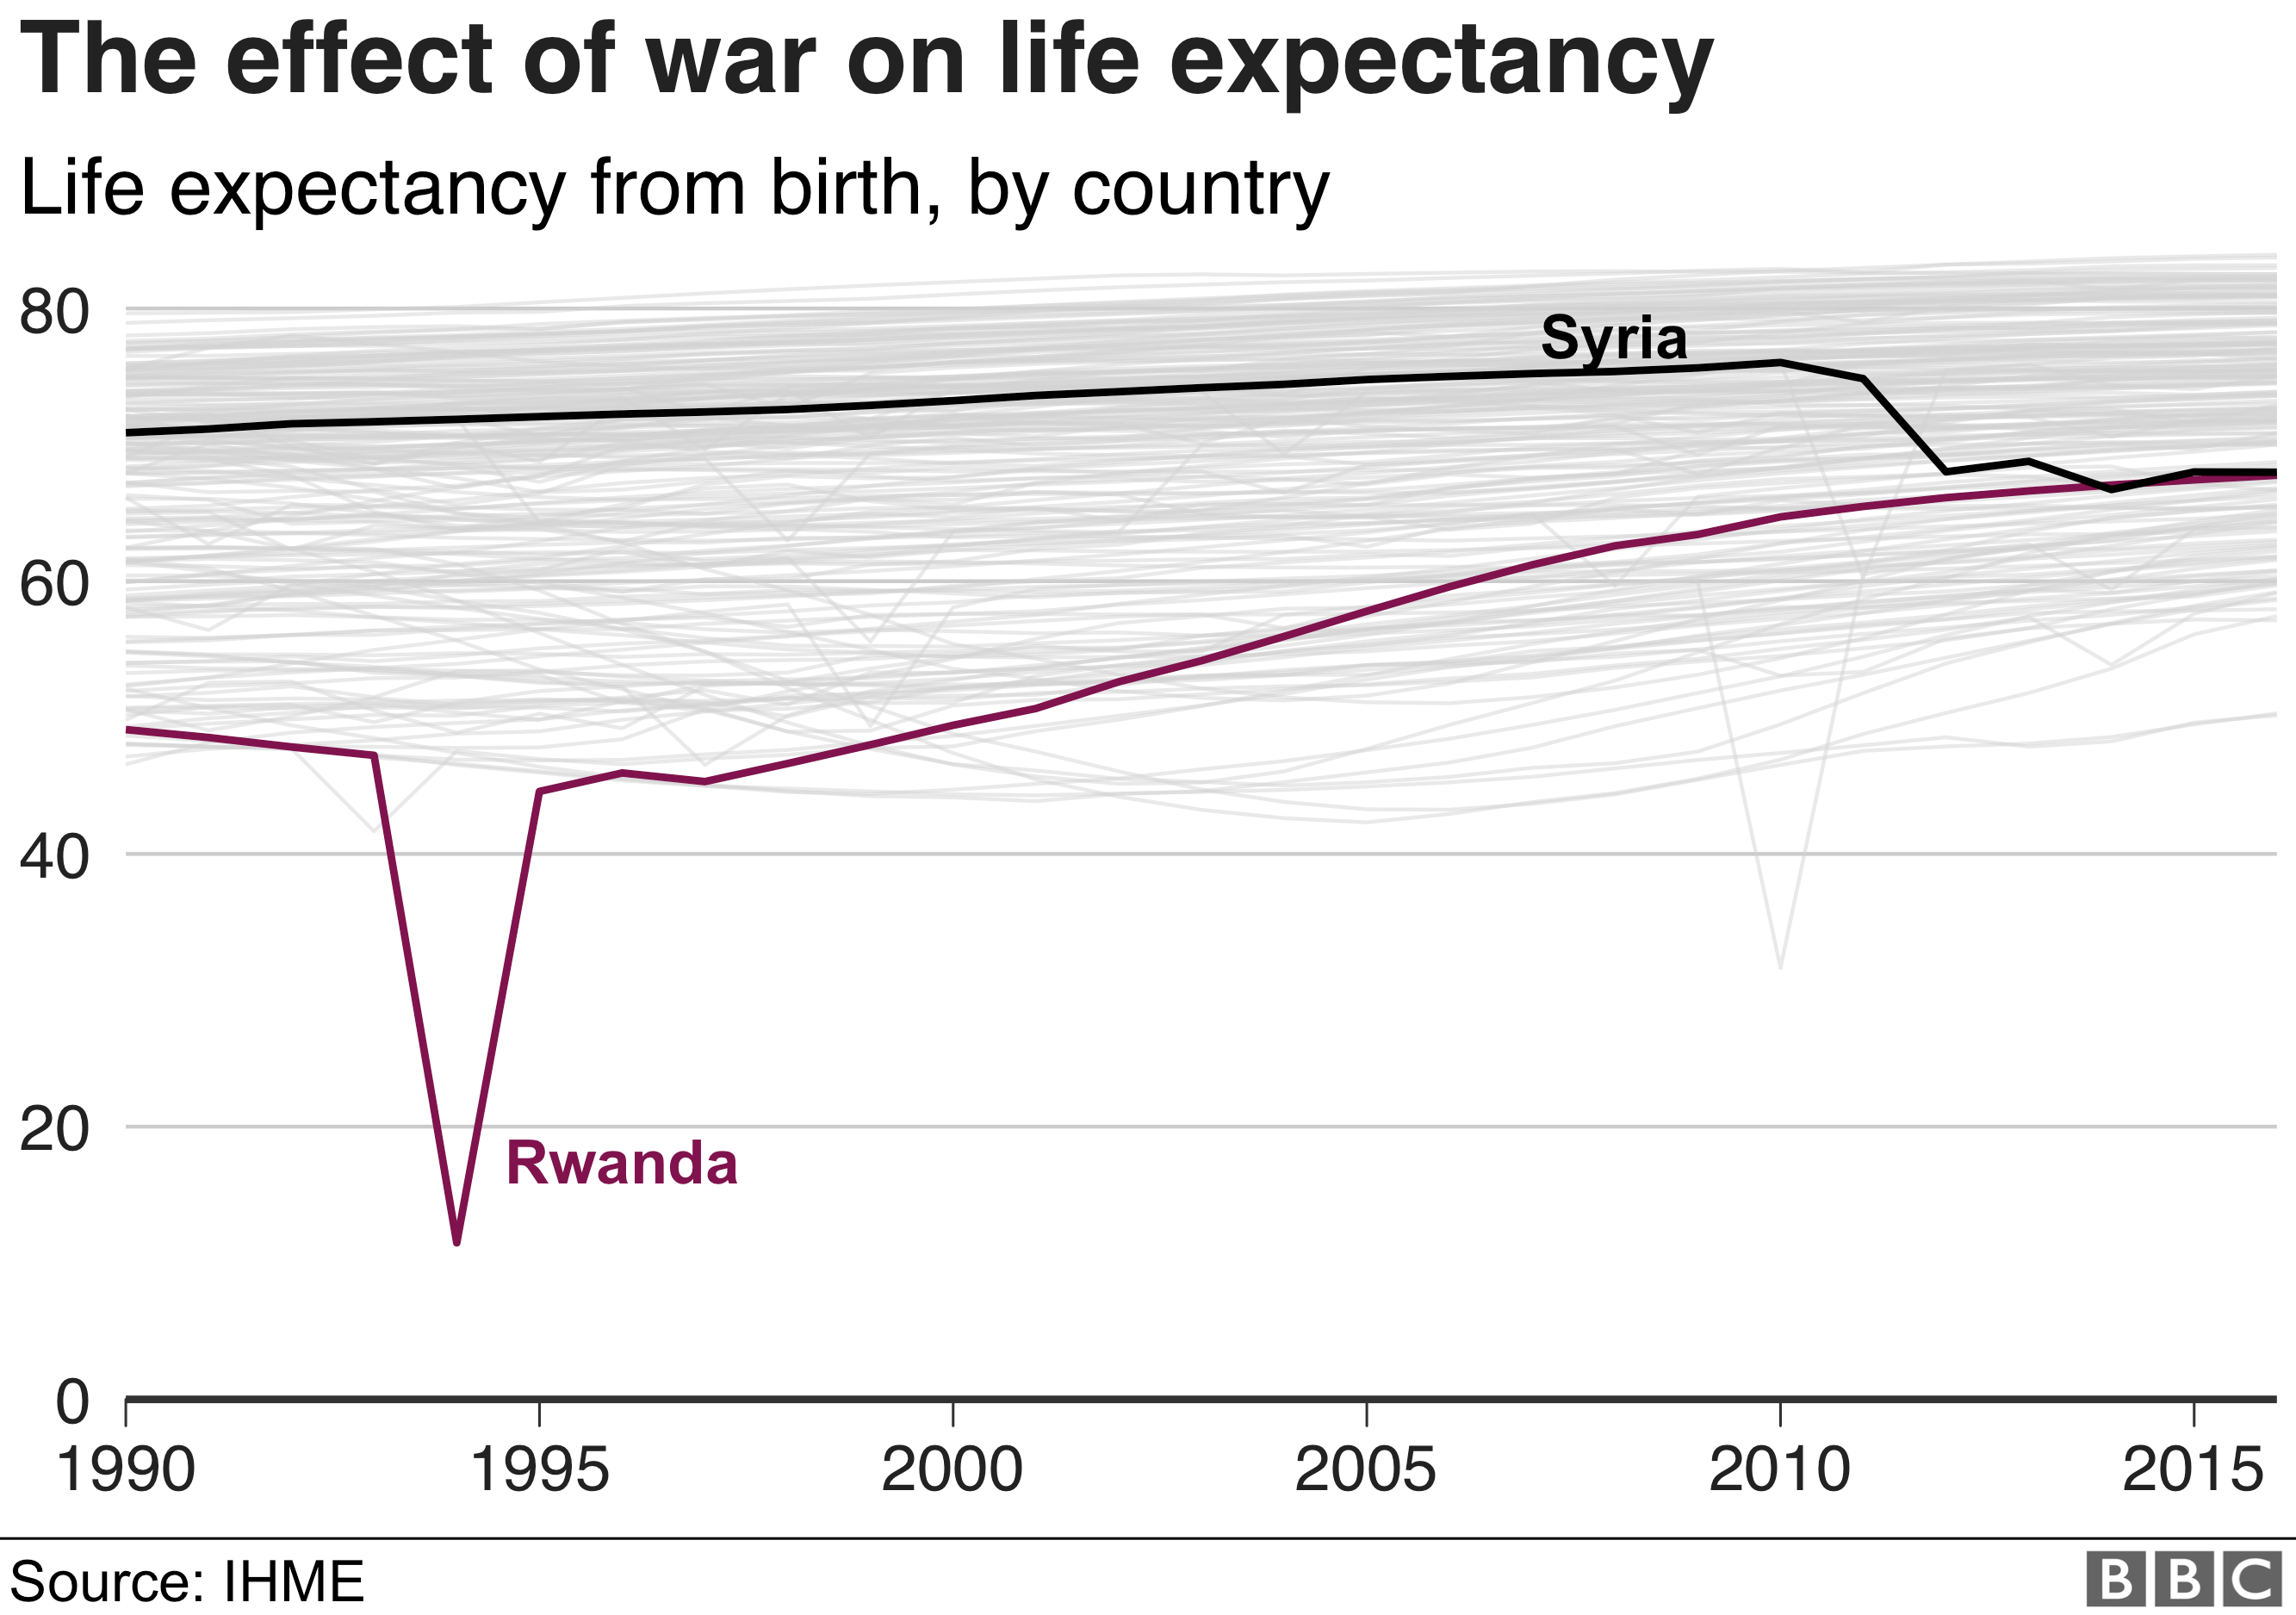 Wars in Rwanda, Syria and Afghanistan have had a serious effect on life expectancy